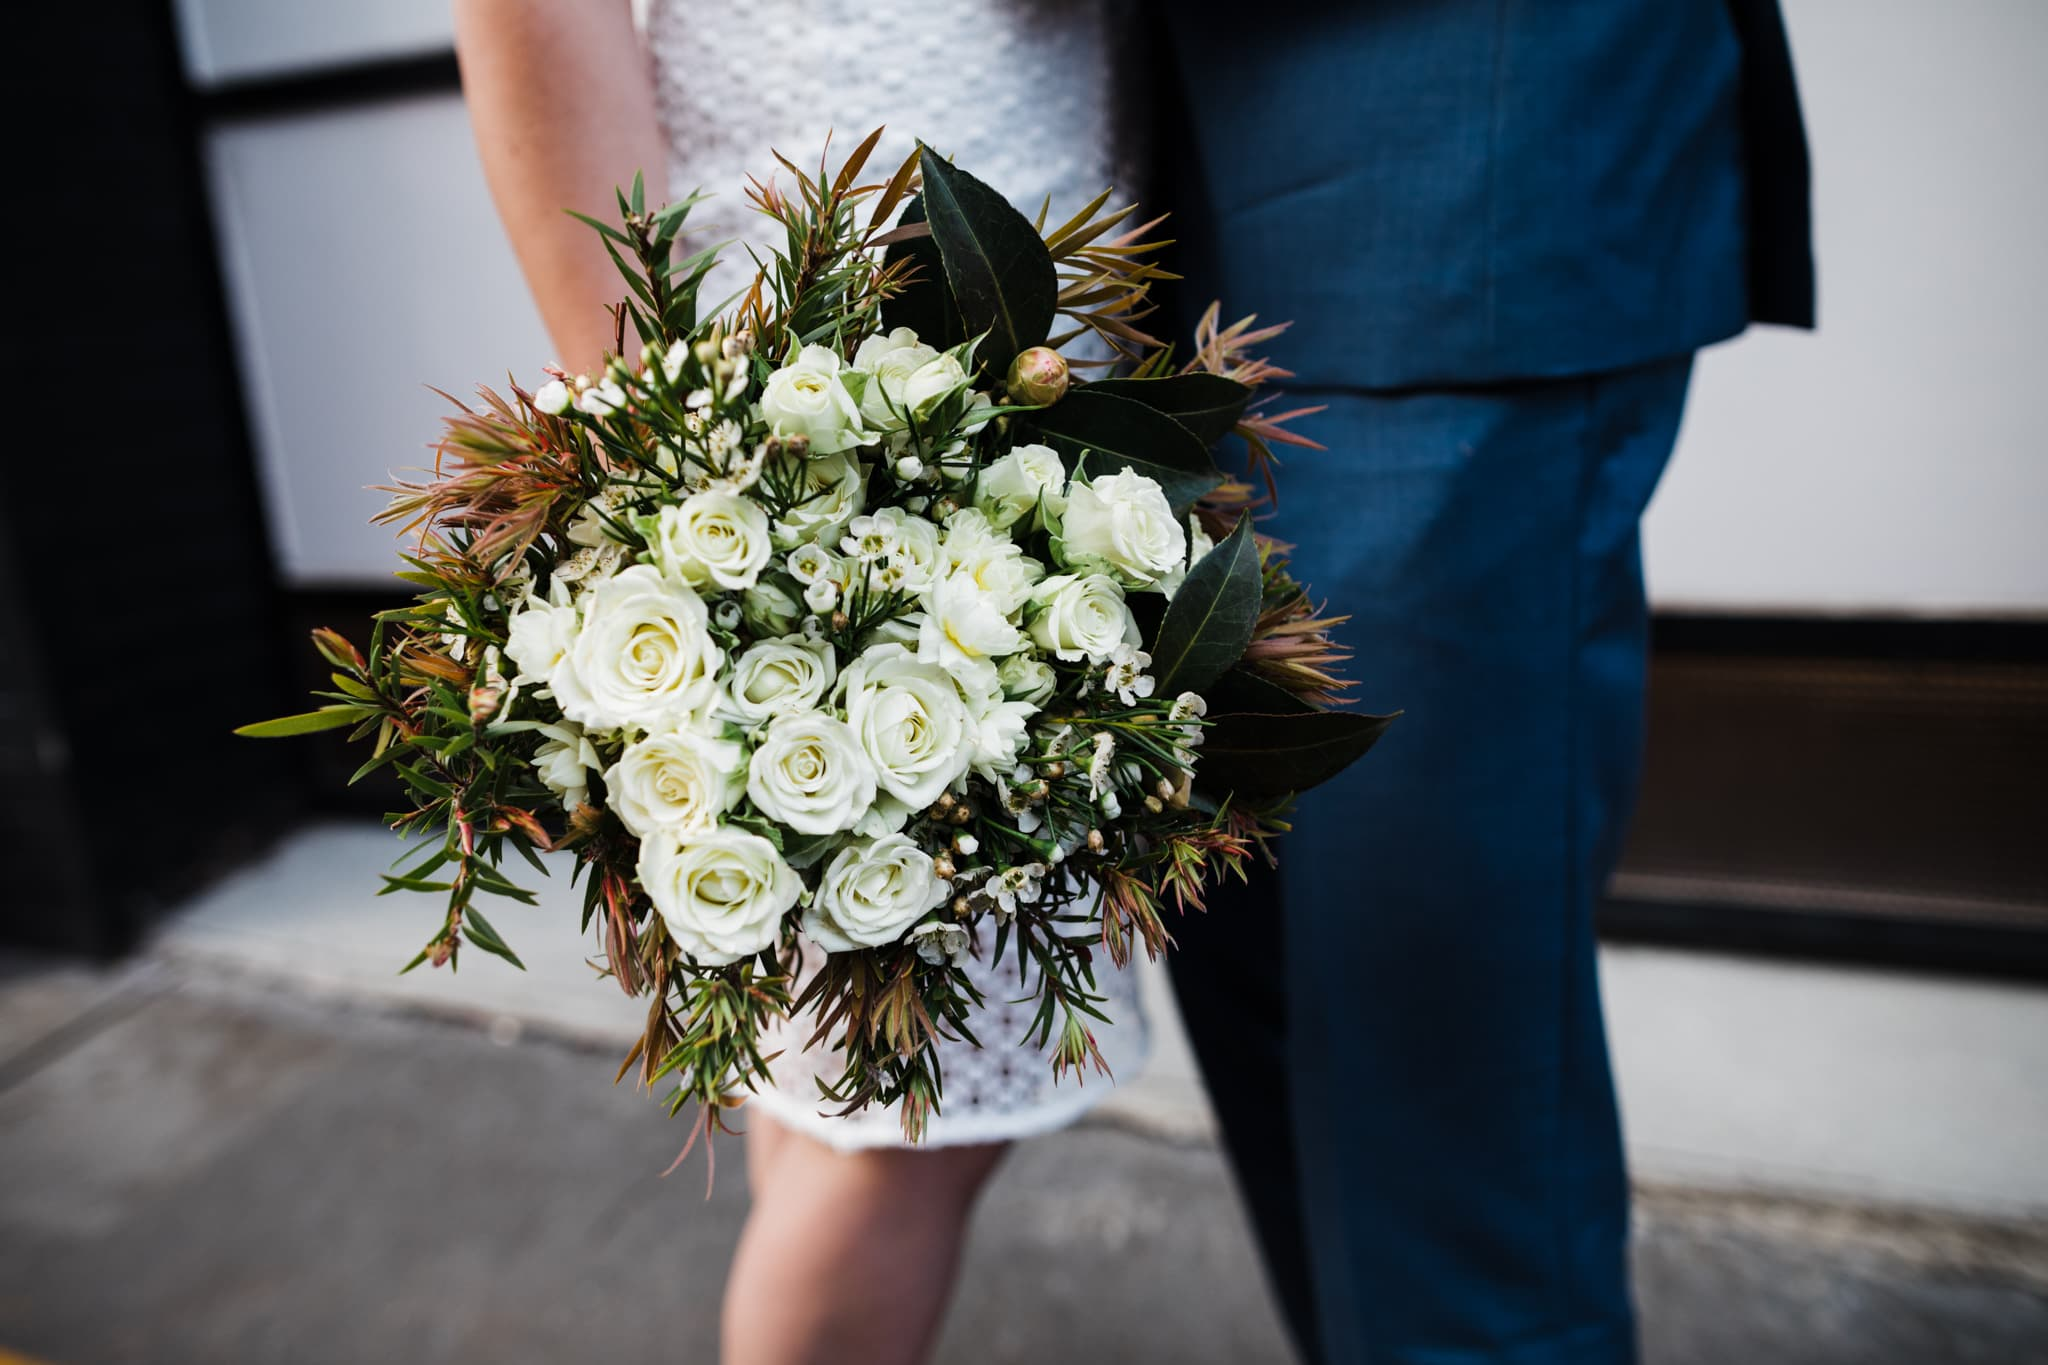 urban brideal bouquet in white - held by bride and groom - blurry